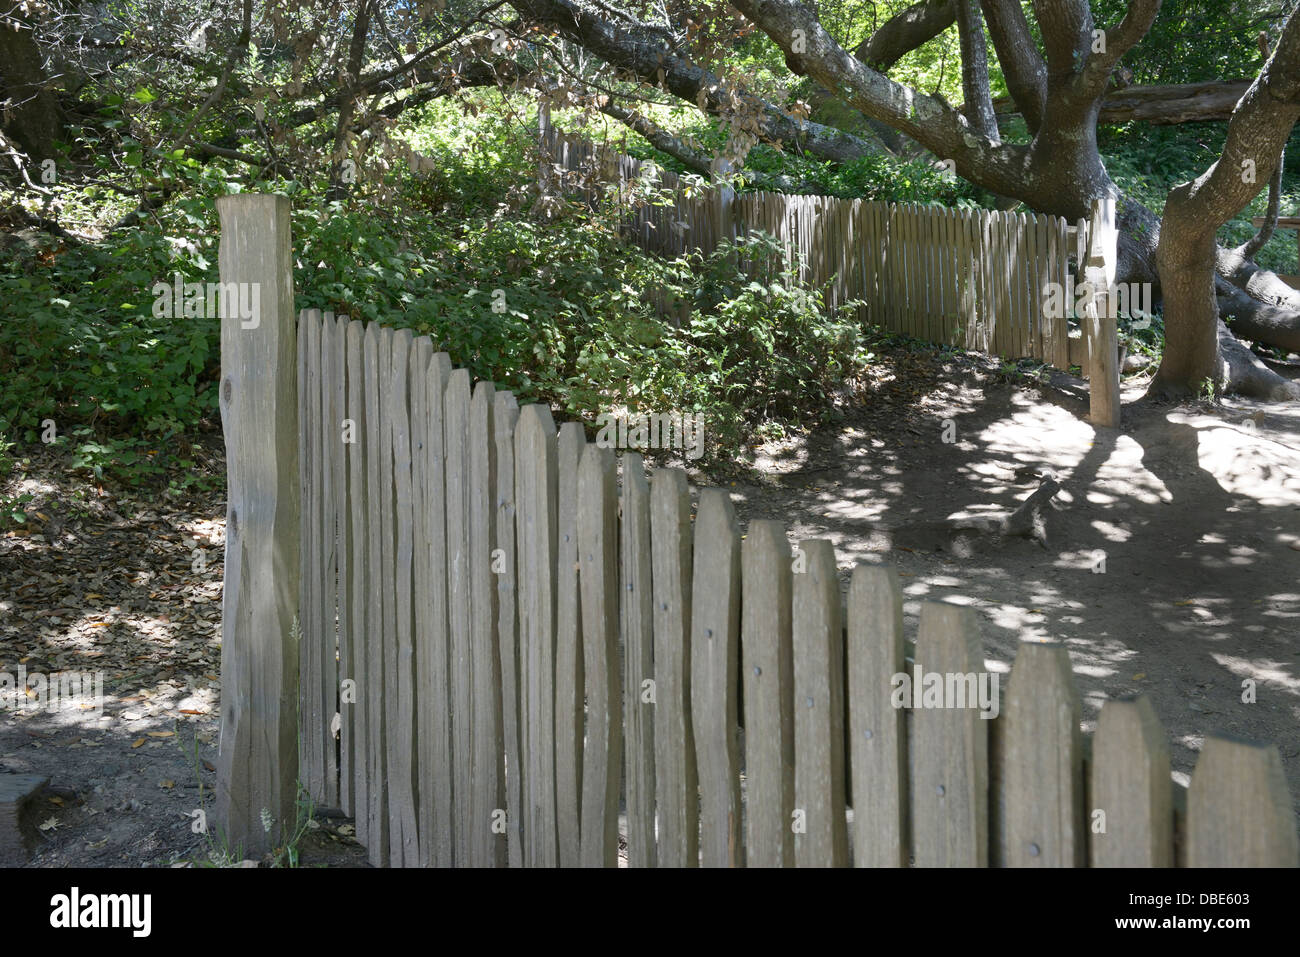 Fence on the San Andreas Fault that was split apart by the 1906 earthquake, Point Reyes, CA - Stock Image